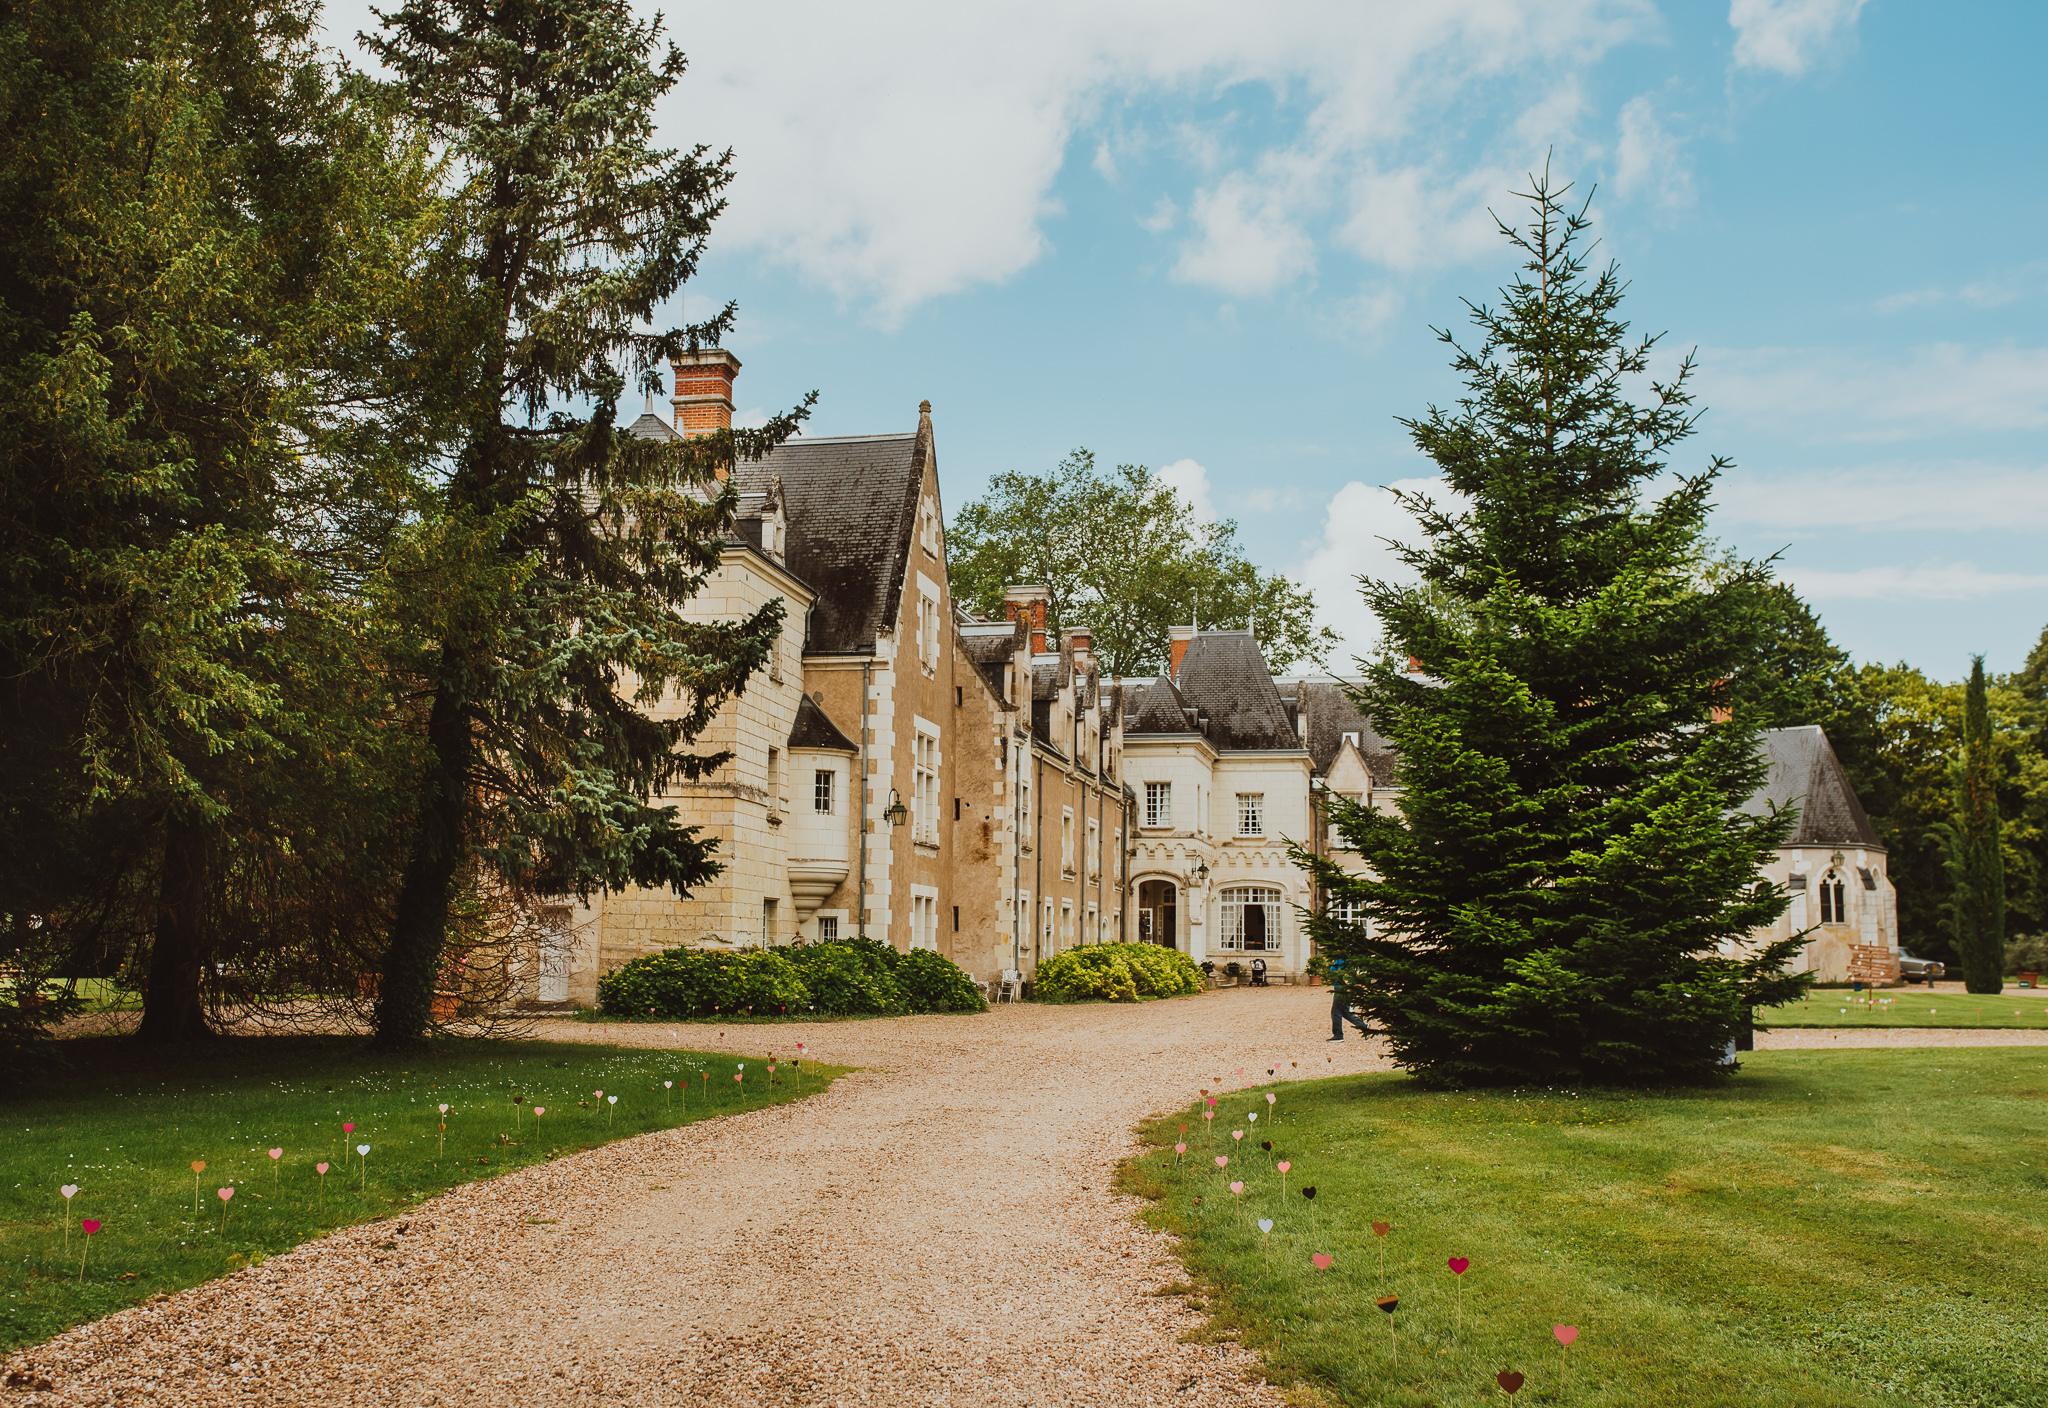 """Chateau de Razay"", France  #weddingphotography #destinationweddingphotographer #summerheartphotography #chateauderazay #europesummerwedding"